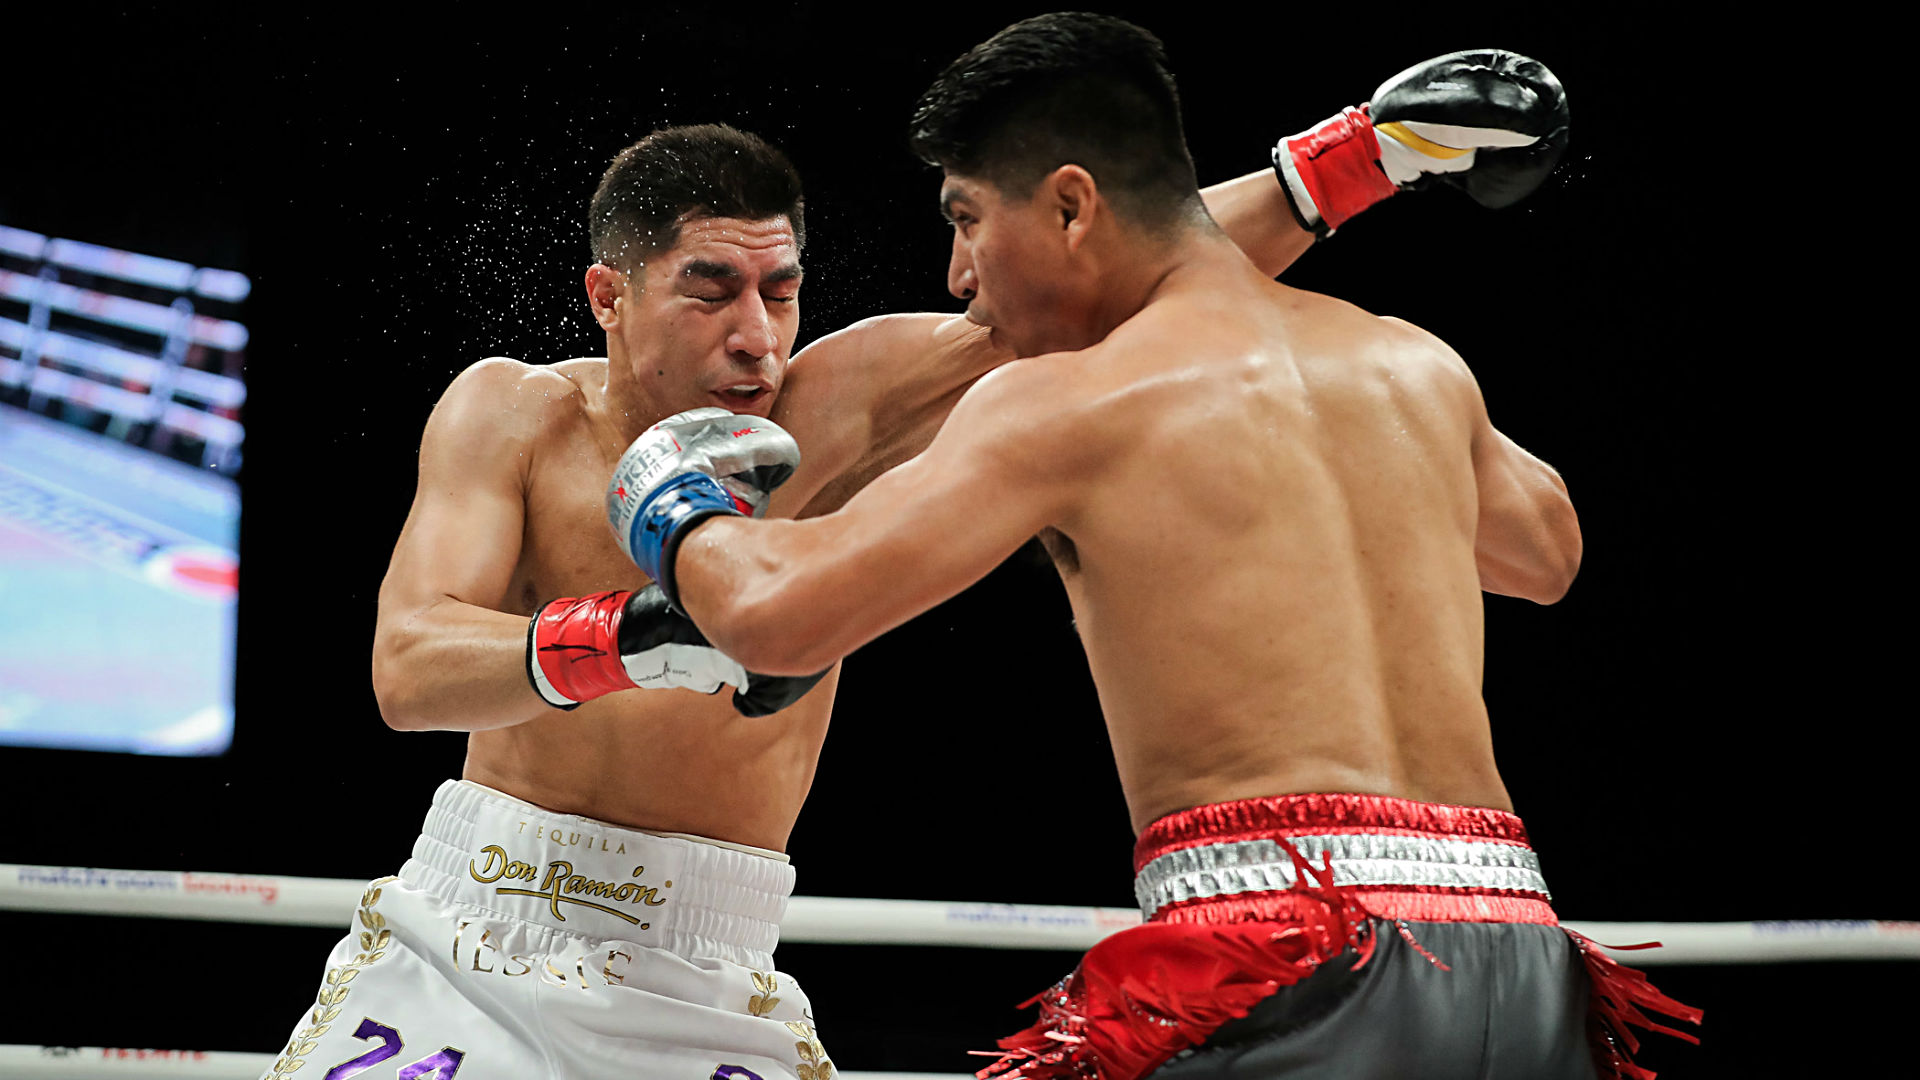 Alexis Texas Boxing mikey garcia vs. jessie vargas results: garcia gets first